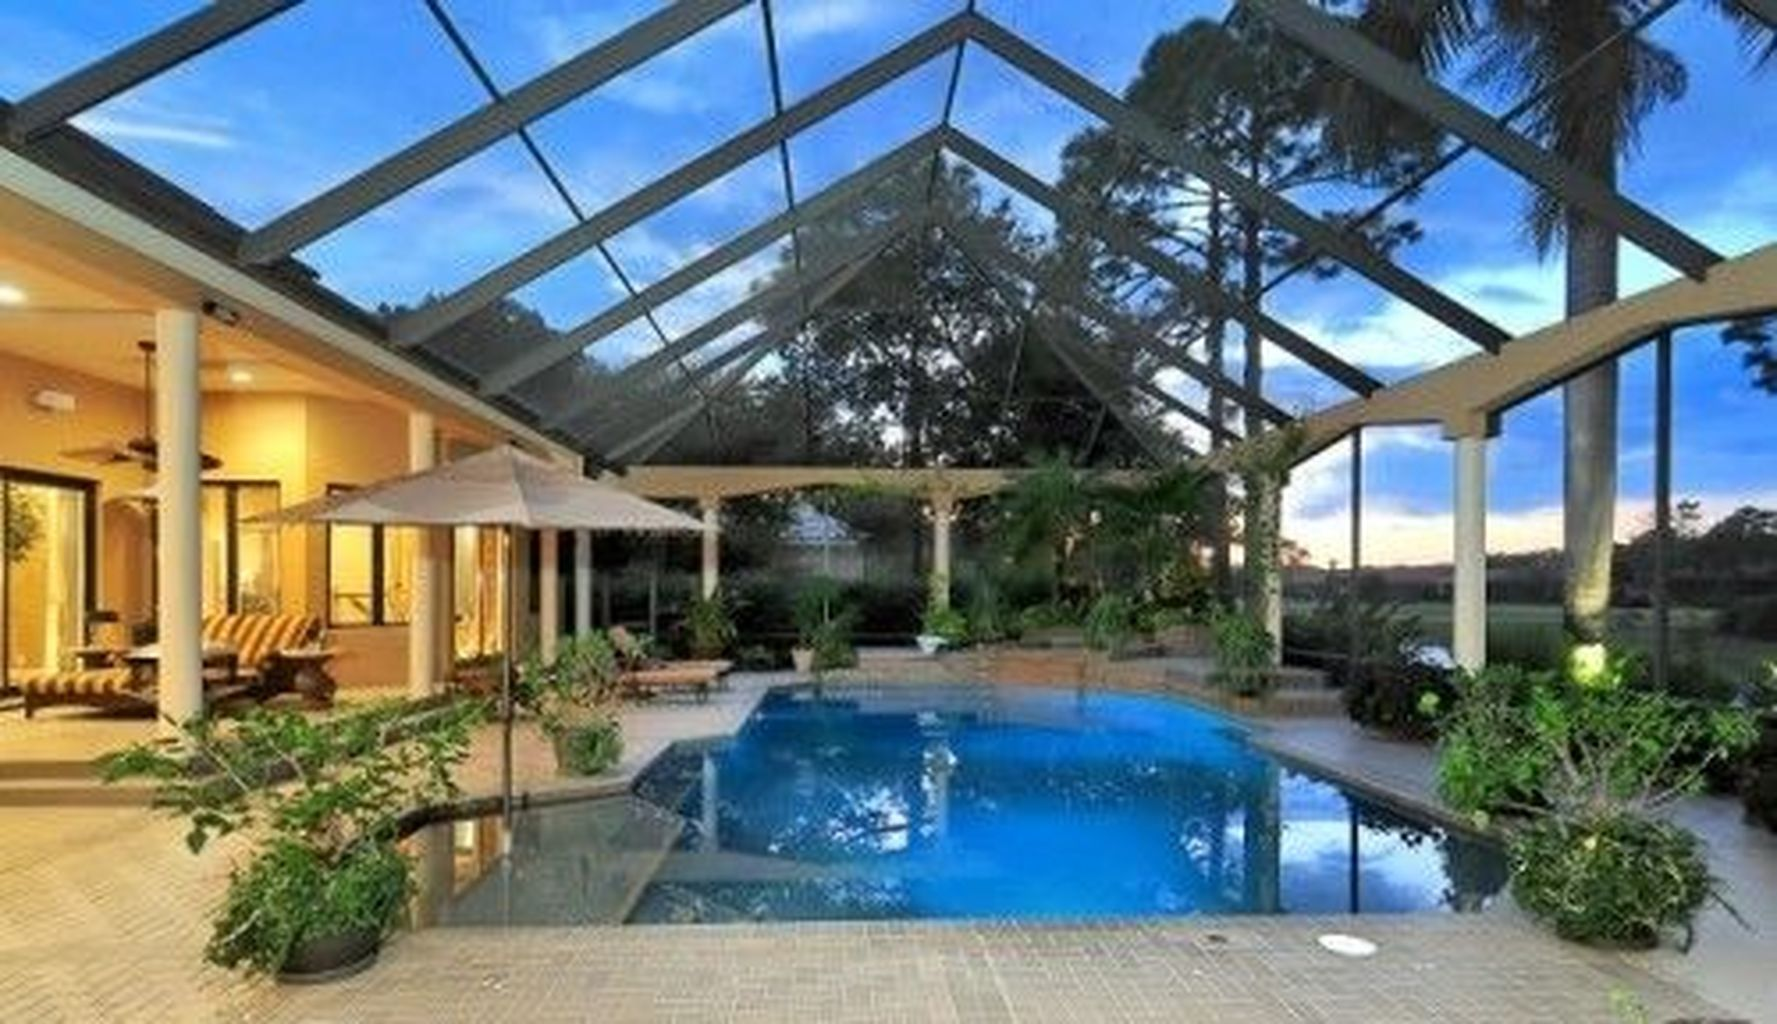 25 Screened In And Covered Pool Design Ideas Reusing And Recycling Your Present Pool Can Indoor Swimming Pool Design Luxury Swimming Pools Small Indoor Pool